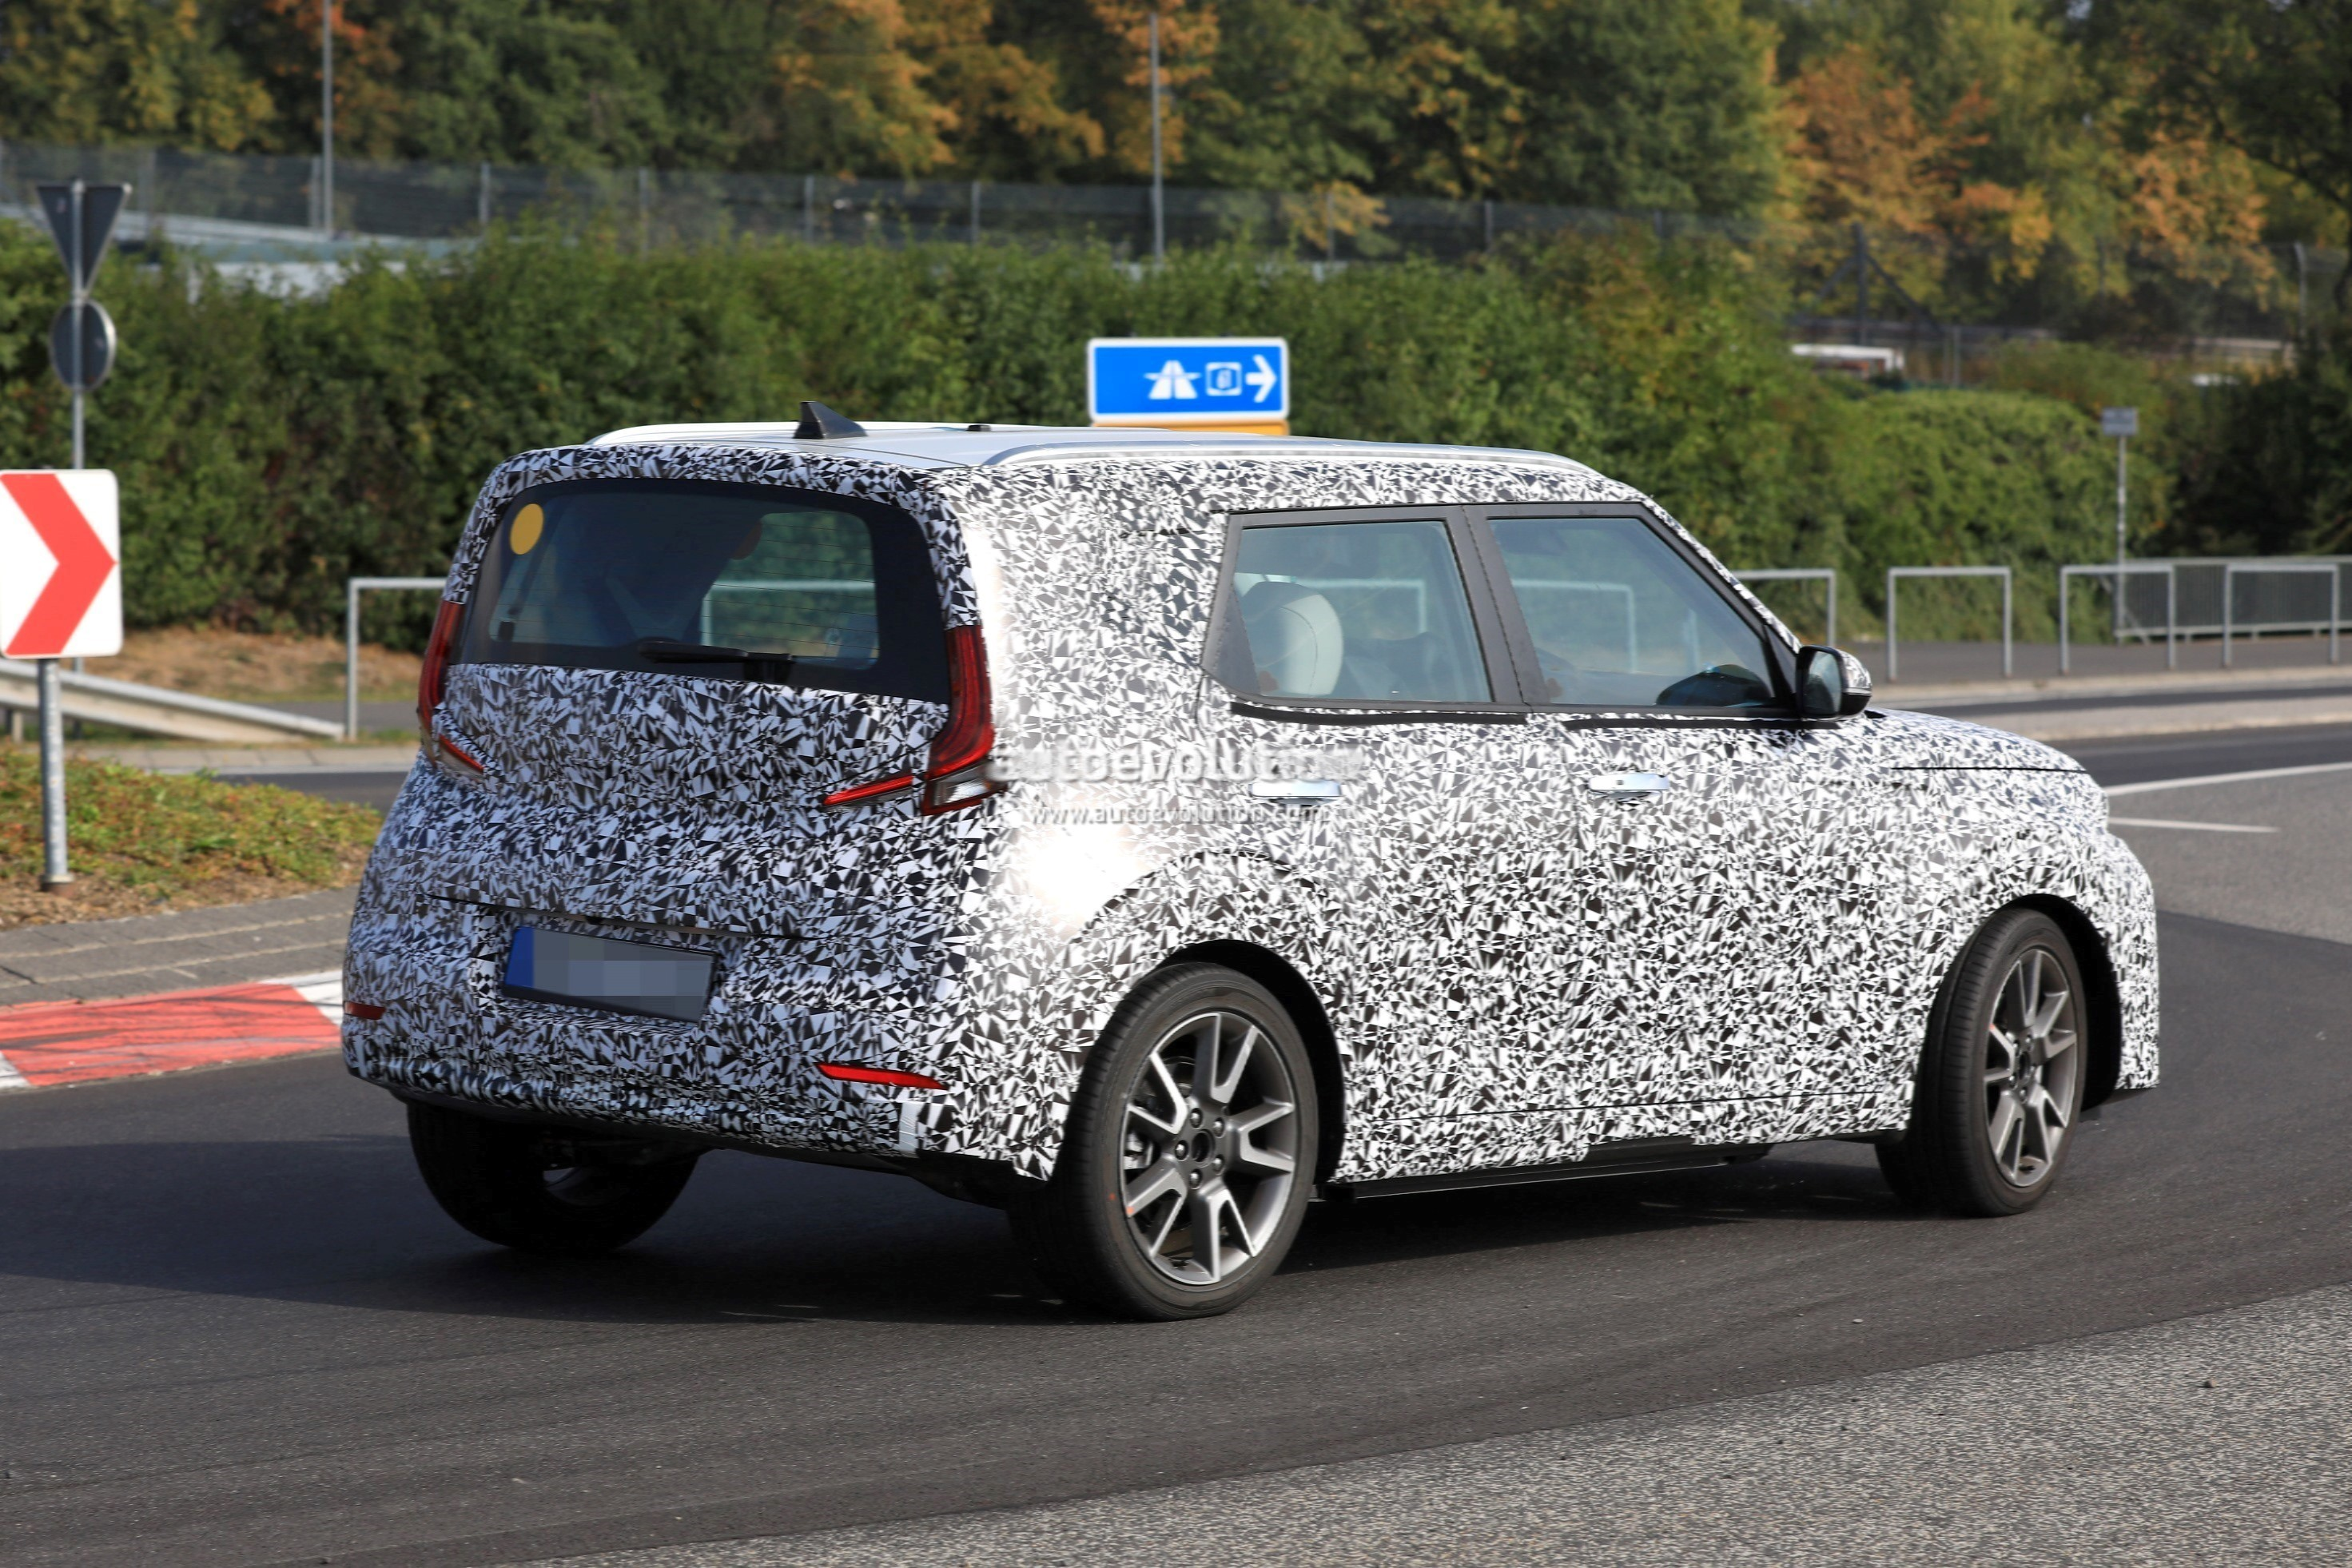 Kia Forte Hatchback >> 2020 Kia Soul EV Spied at The Nurburgring With Full-LED Headlights - autoevolution